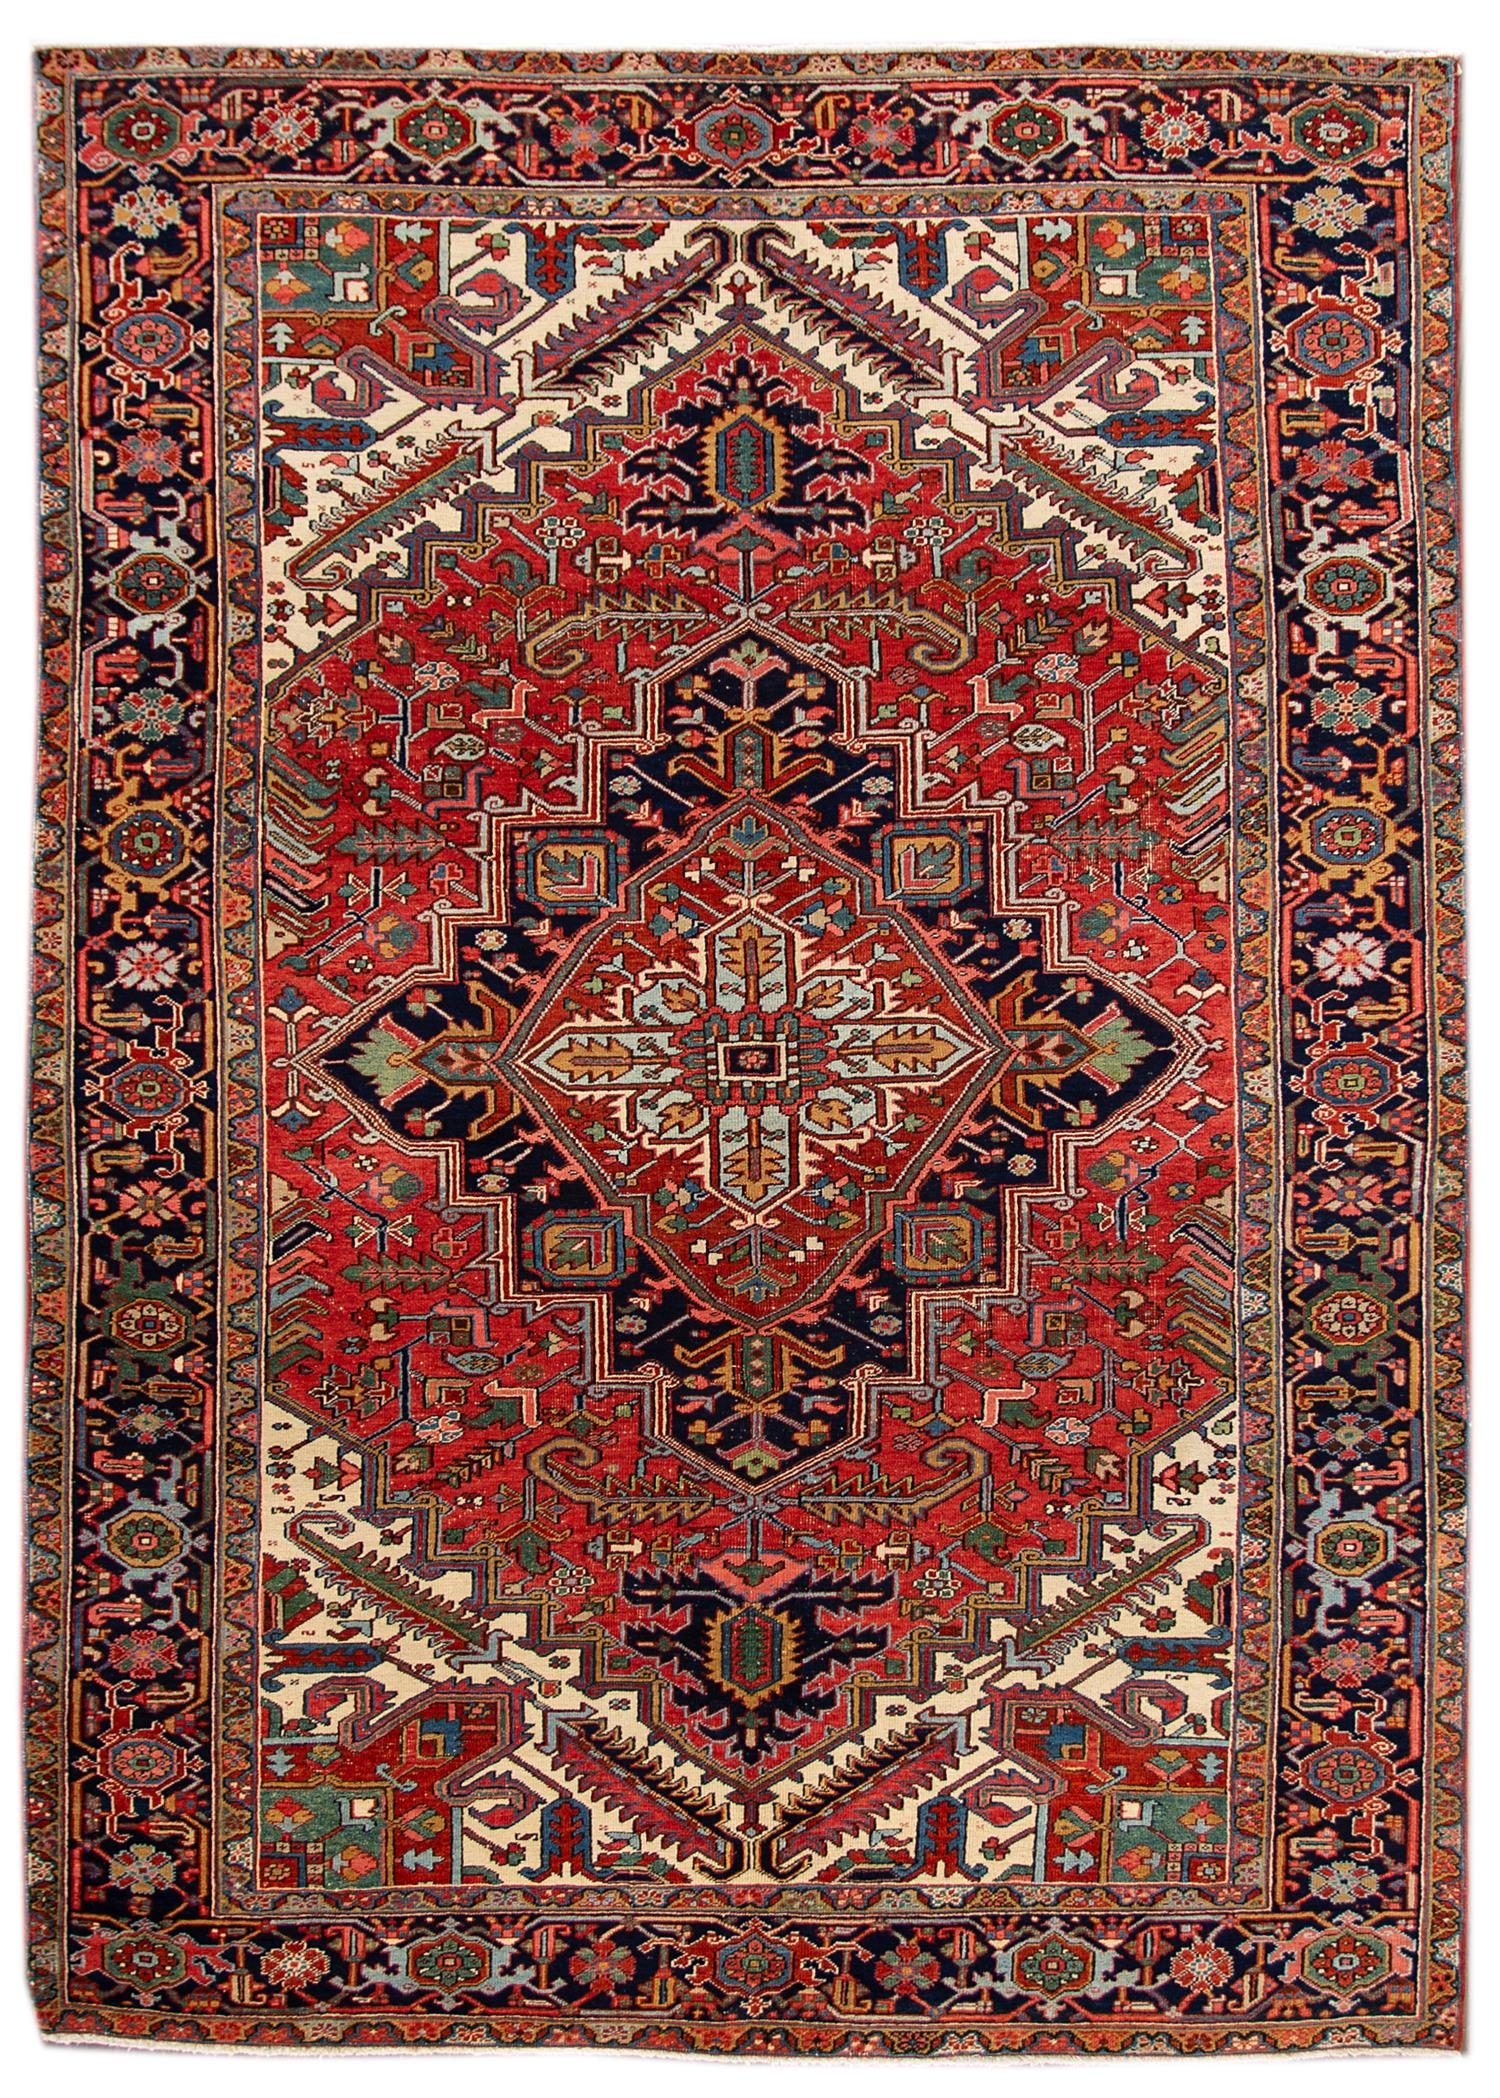 Antique Heriz Rug, 8X11